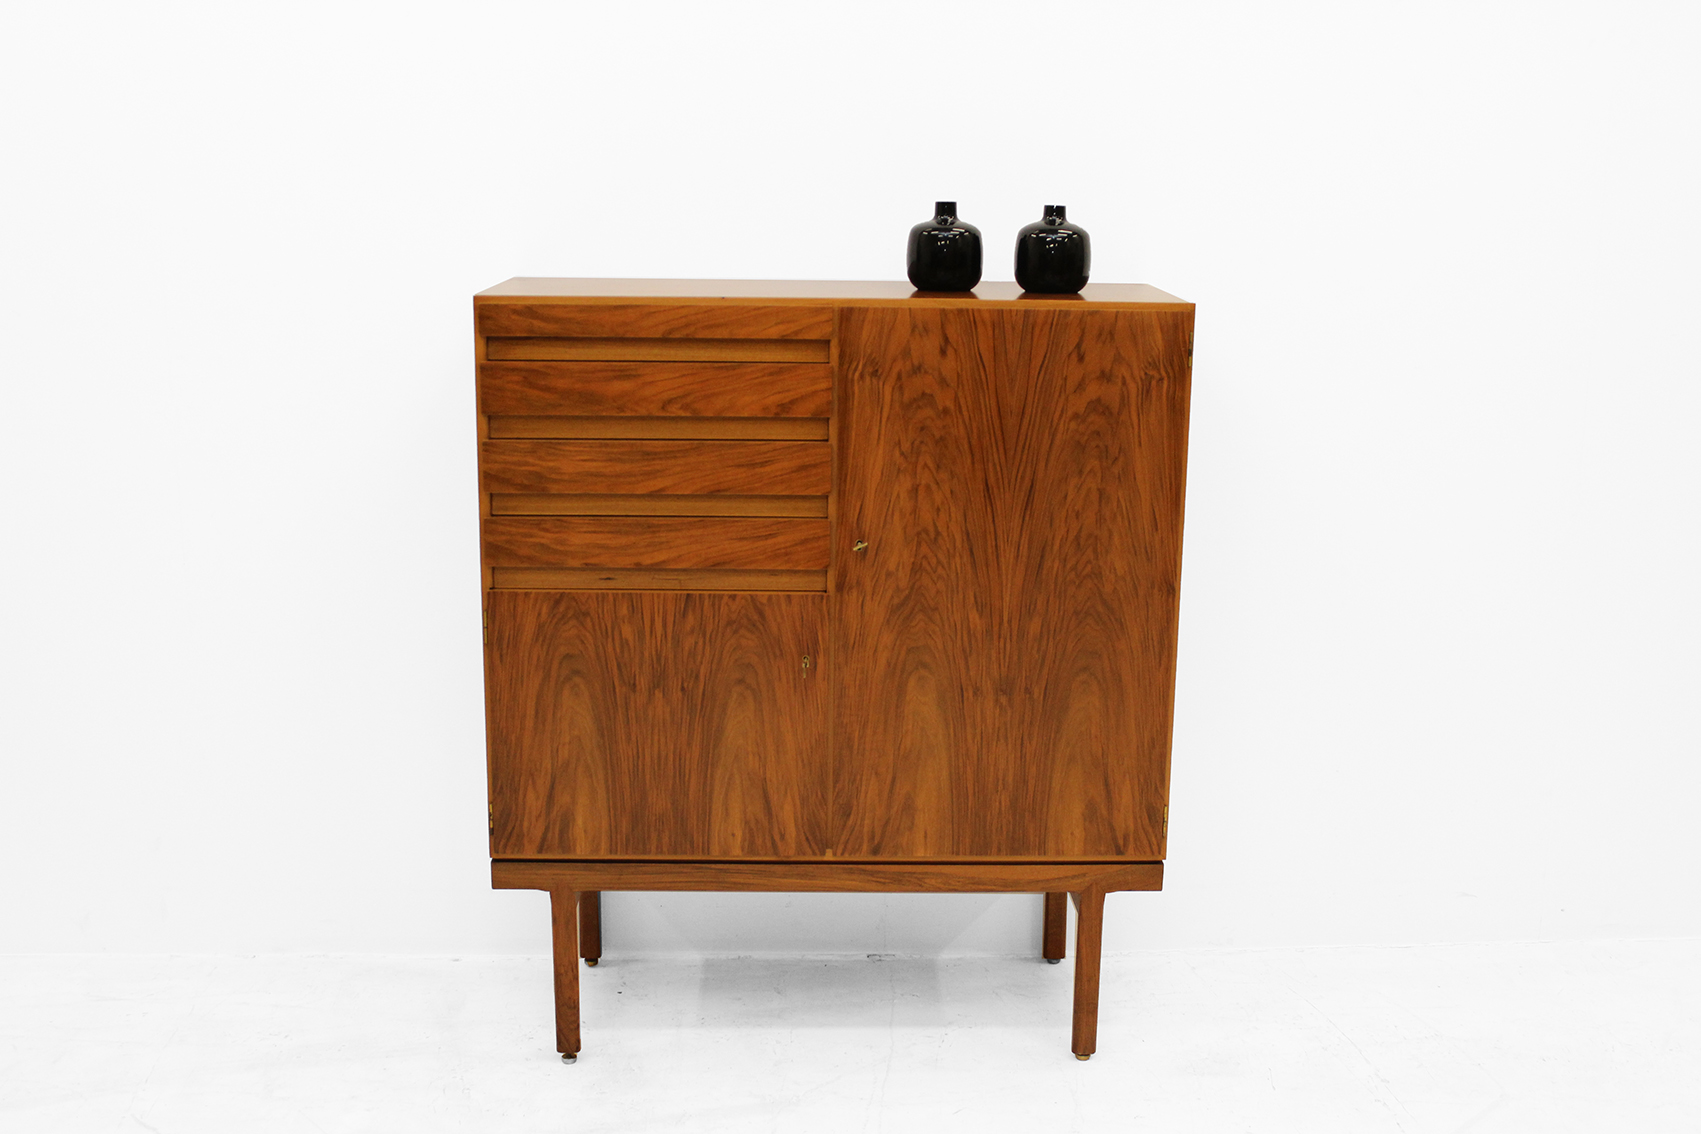 Abstracta Cabinet with drawers by Van den Berghe Pauvers